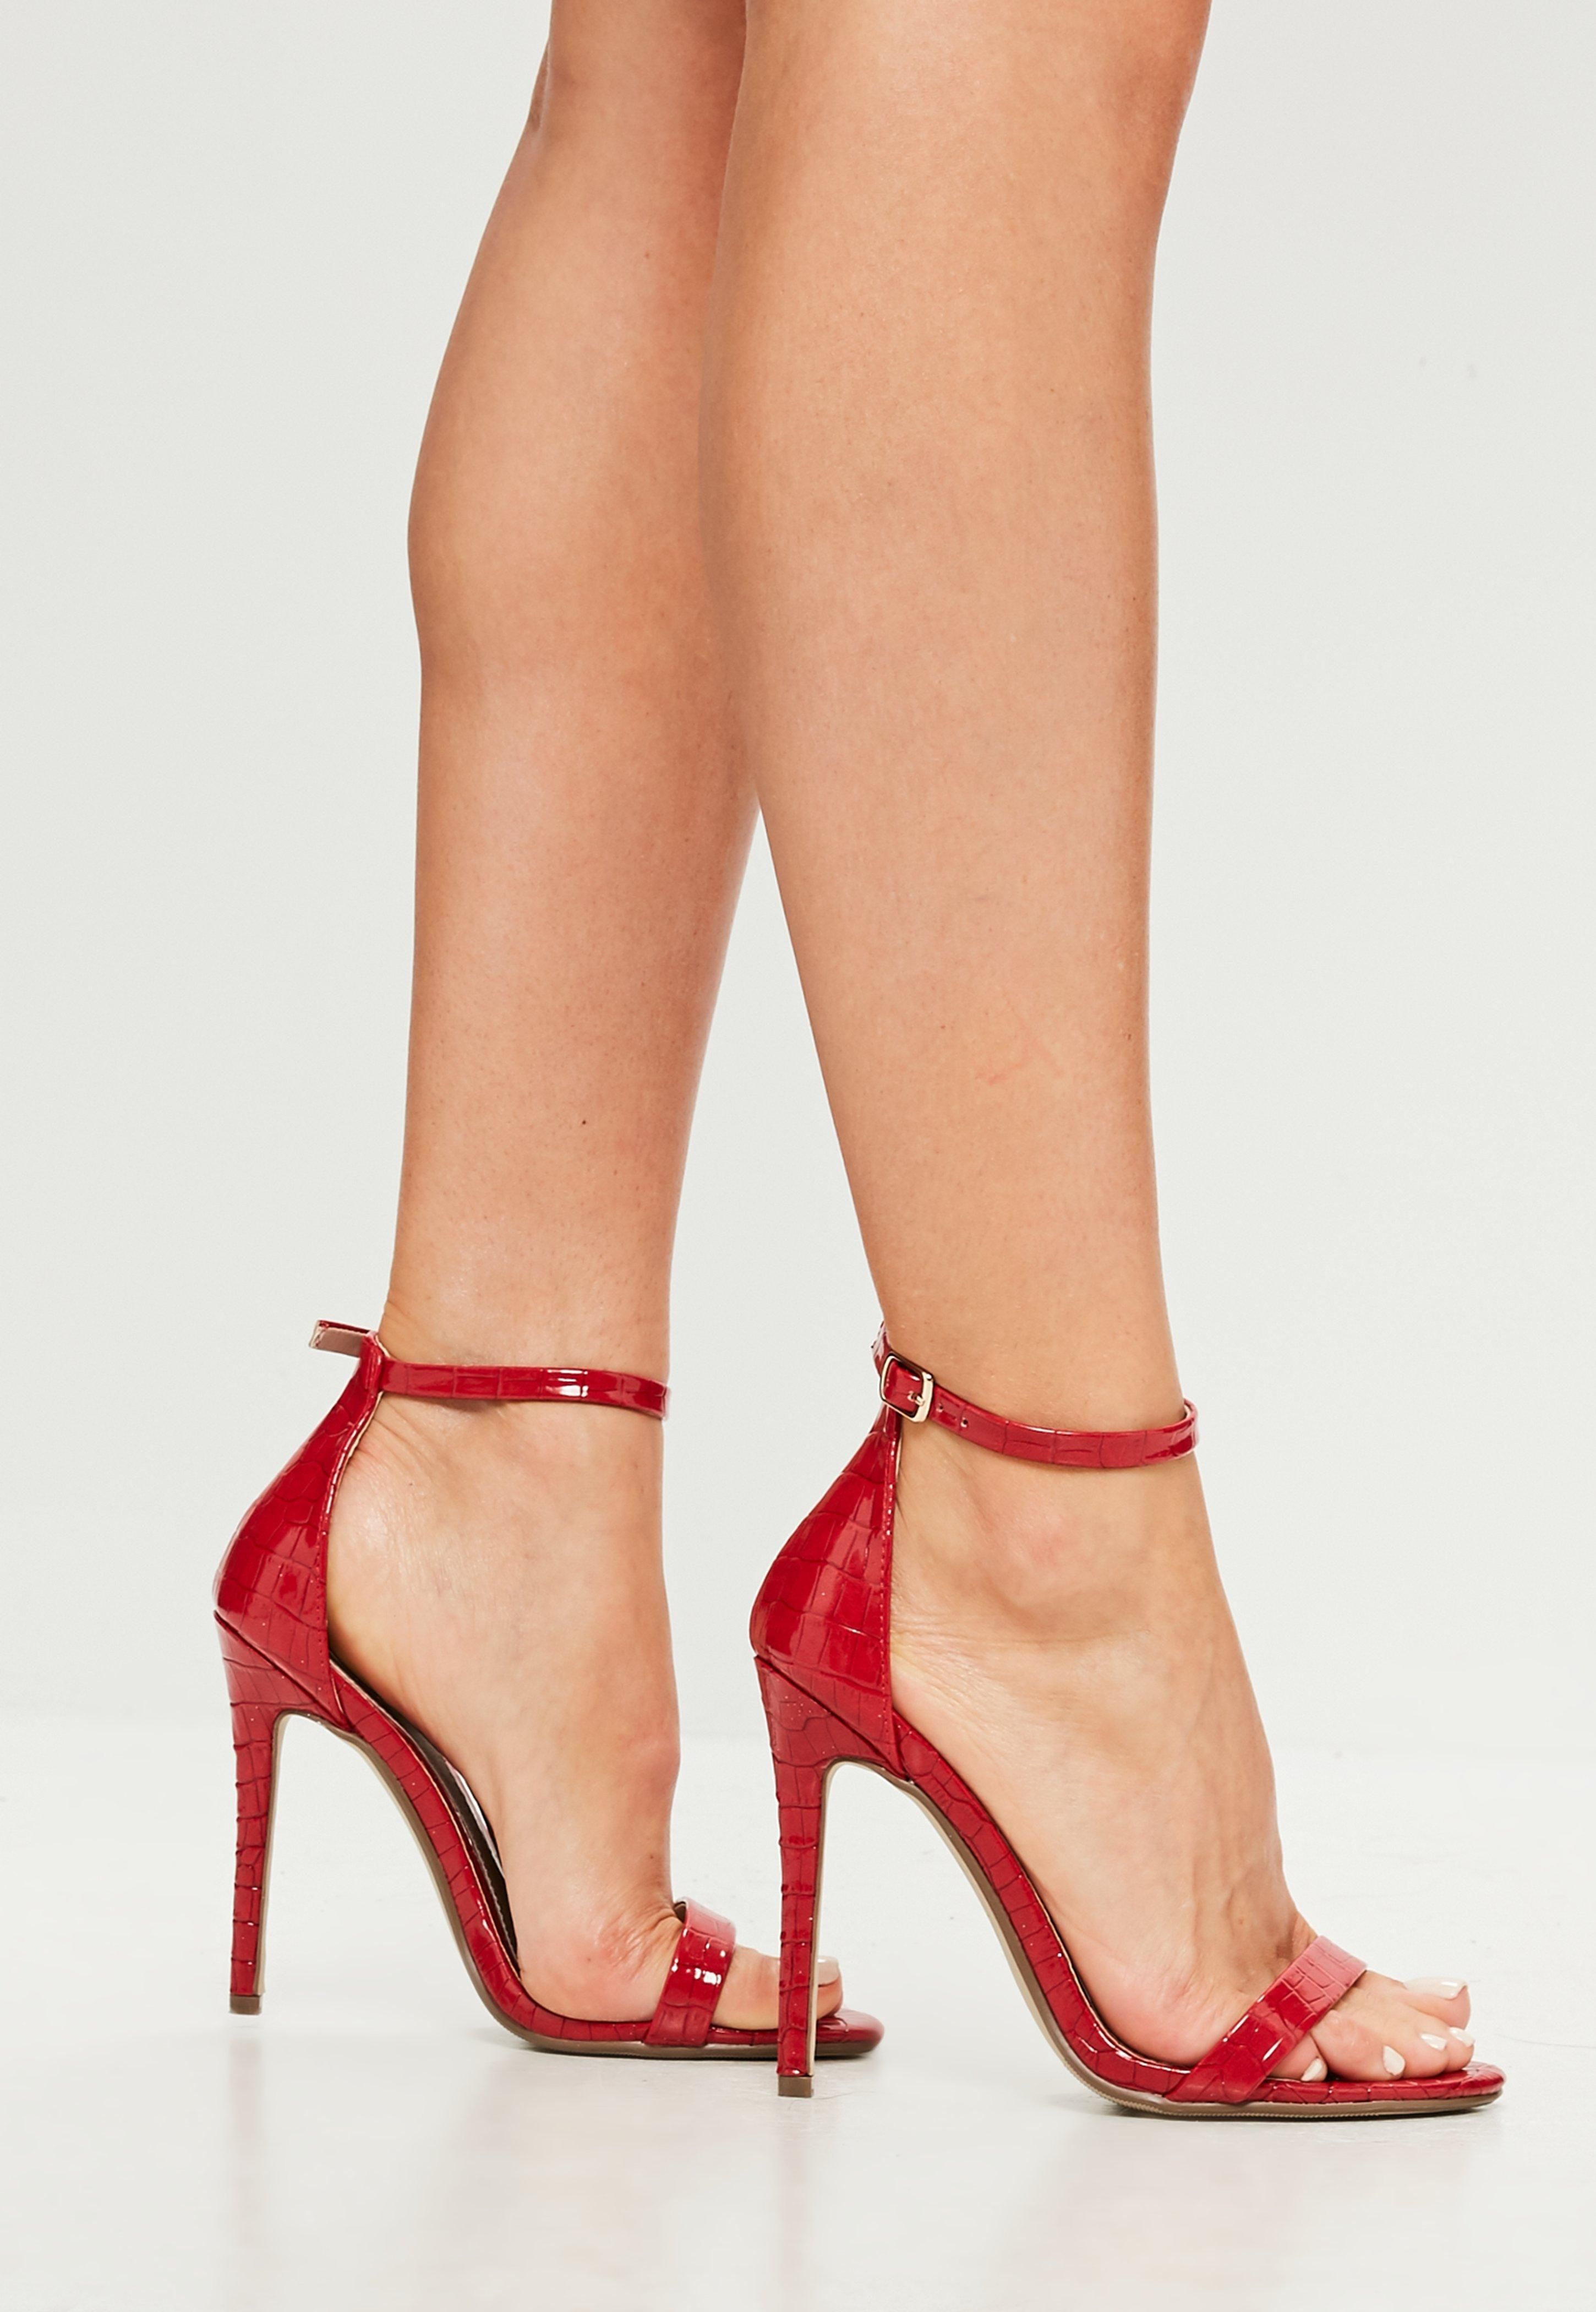 c6d0e37a4ff2 Lyst - Missguided Red Two Strap Croc Barely There Heels in Red